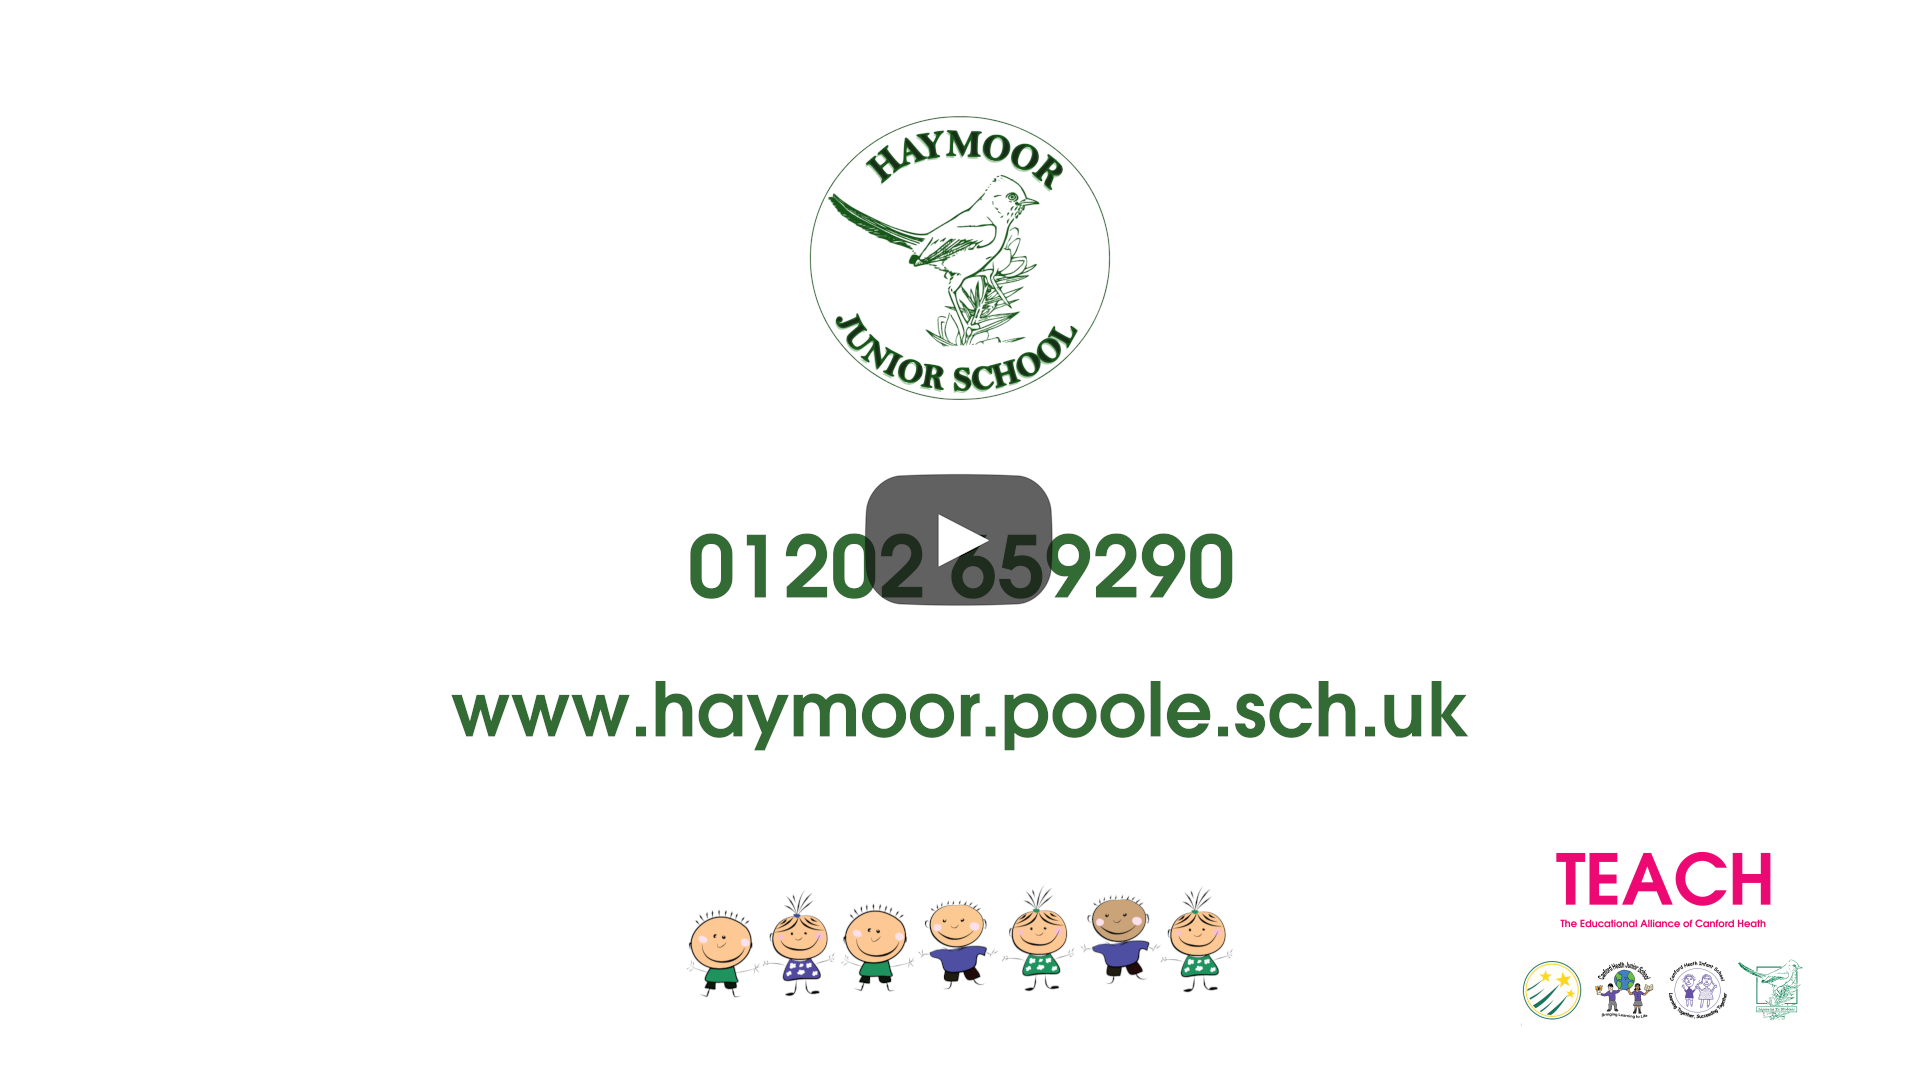 Haymoor Junior School